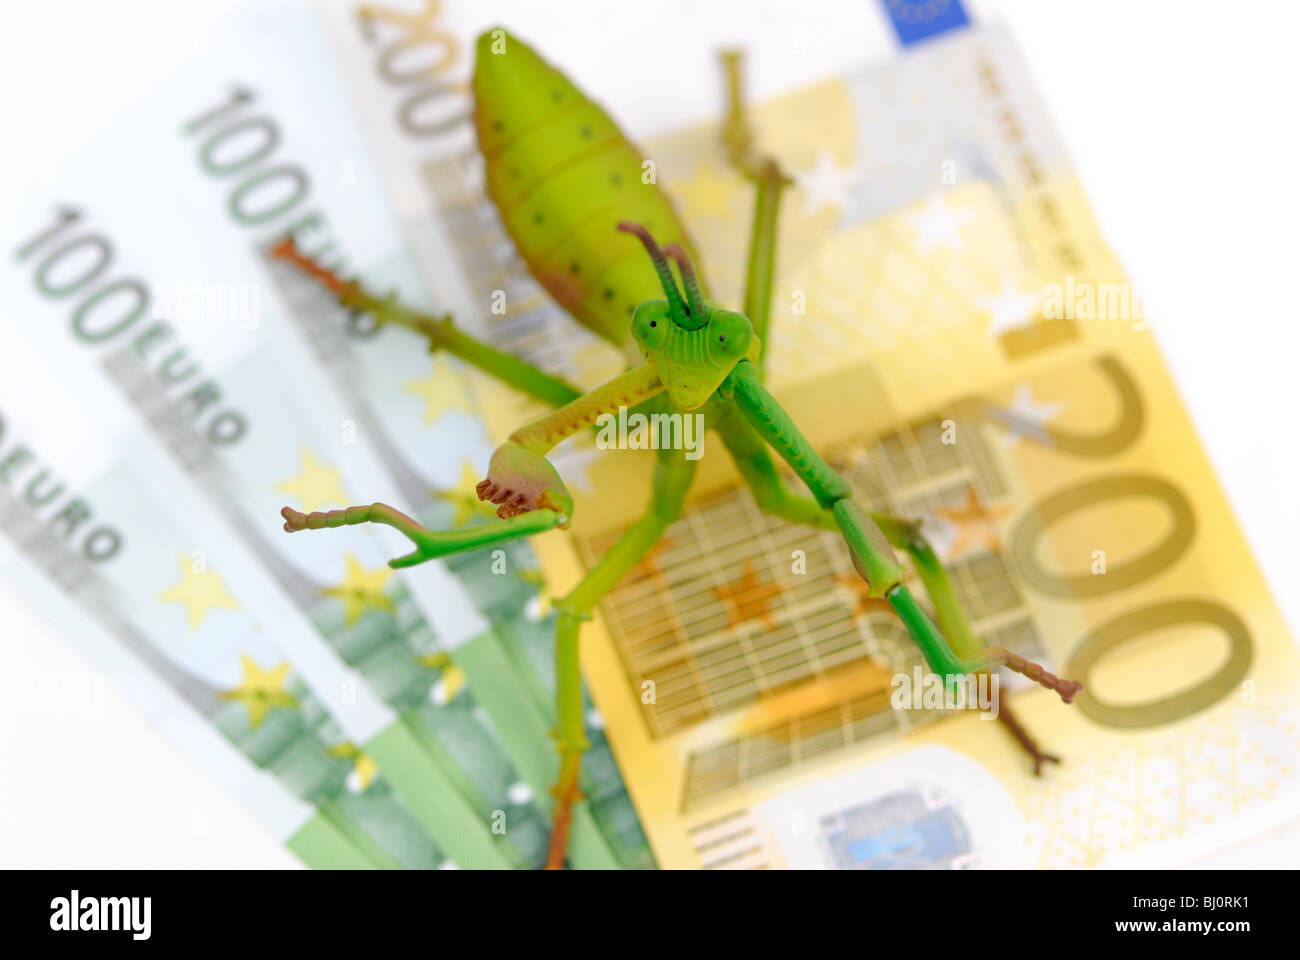 Grasshopper on money, hedge funds - Stock Image